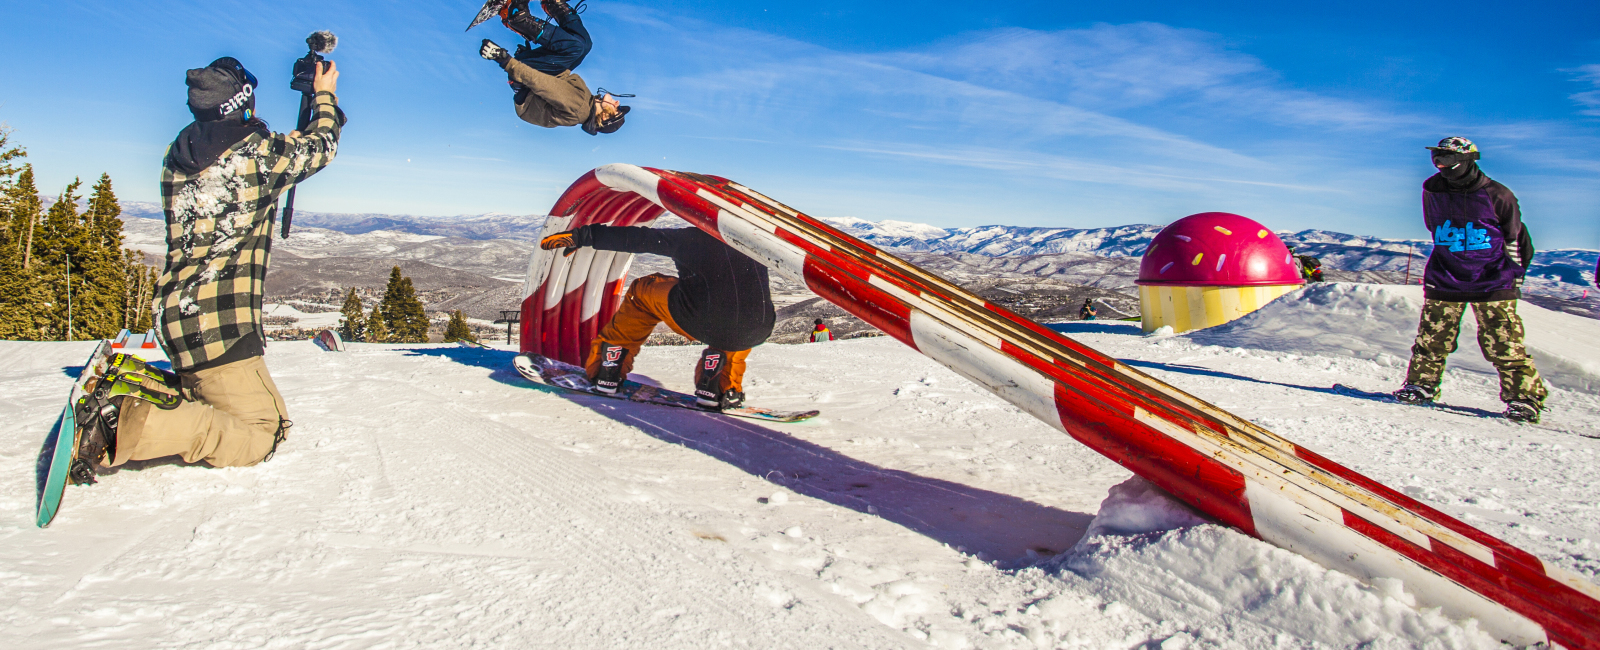 Park City Mountain Resort's Neff Land Park Edit